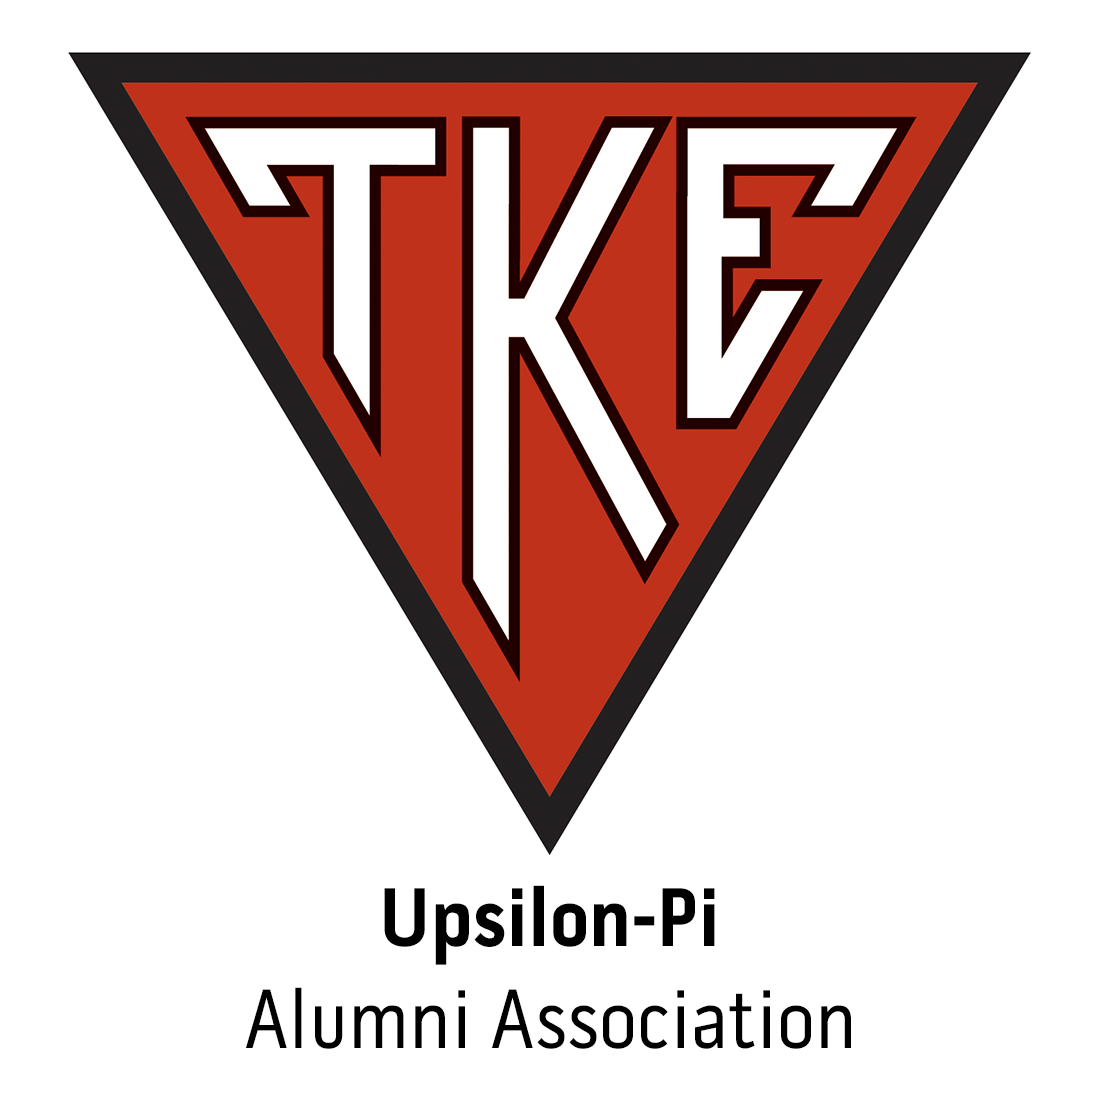 Upsilon-Pi Alumni Association at University of California-Santa Cruz